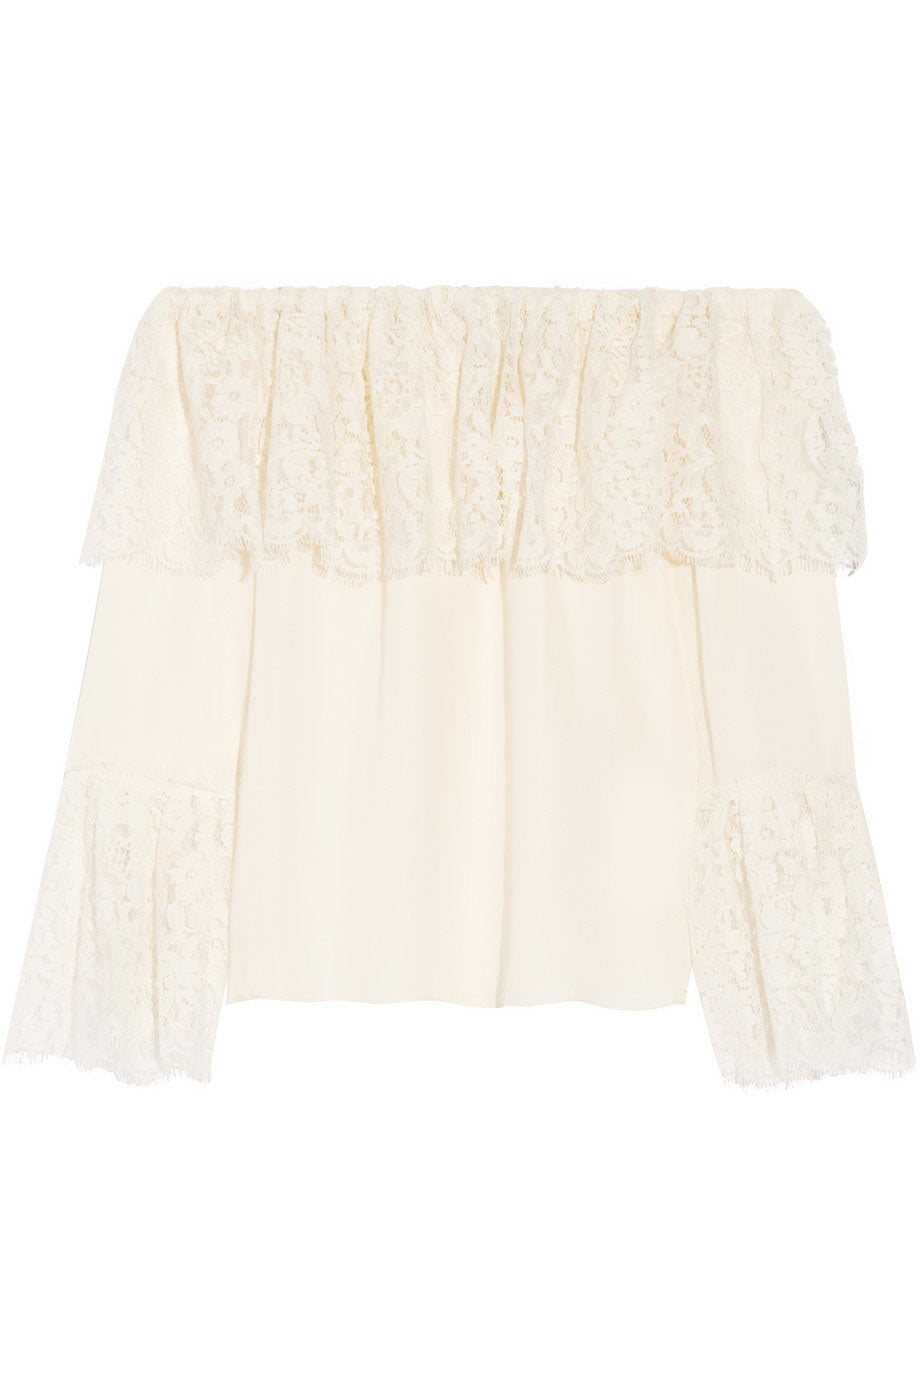 Rachel Zoe Lace Ruffled Off-Shoulder Krystal Blouse / Sz 4-Style Therapy